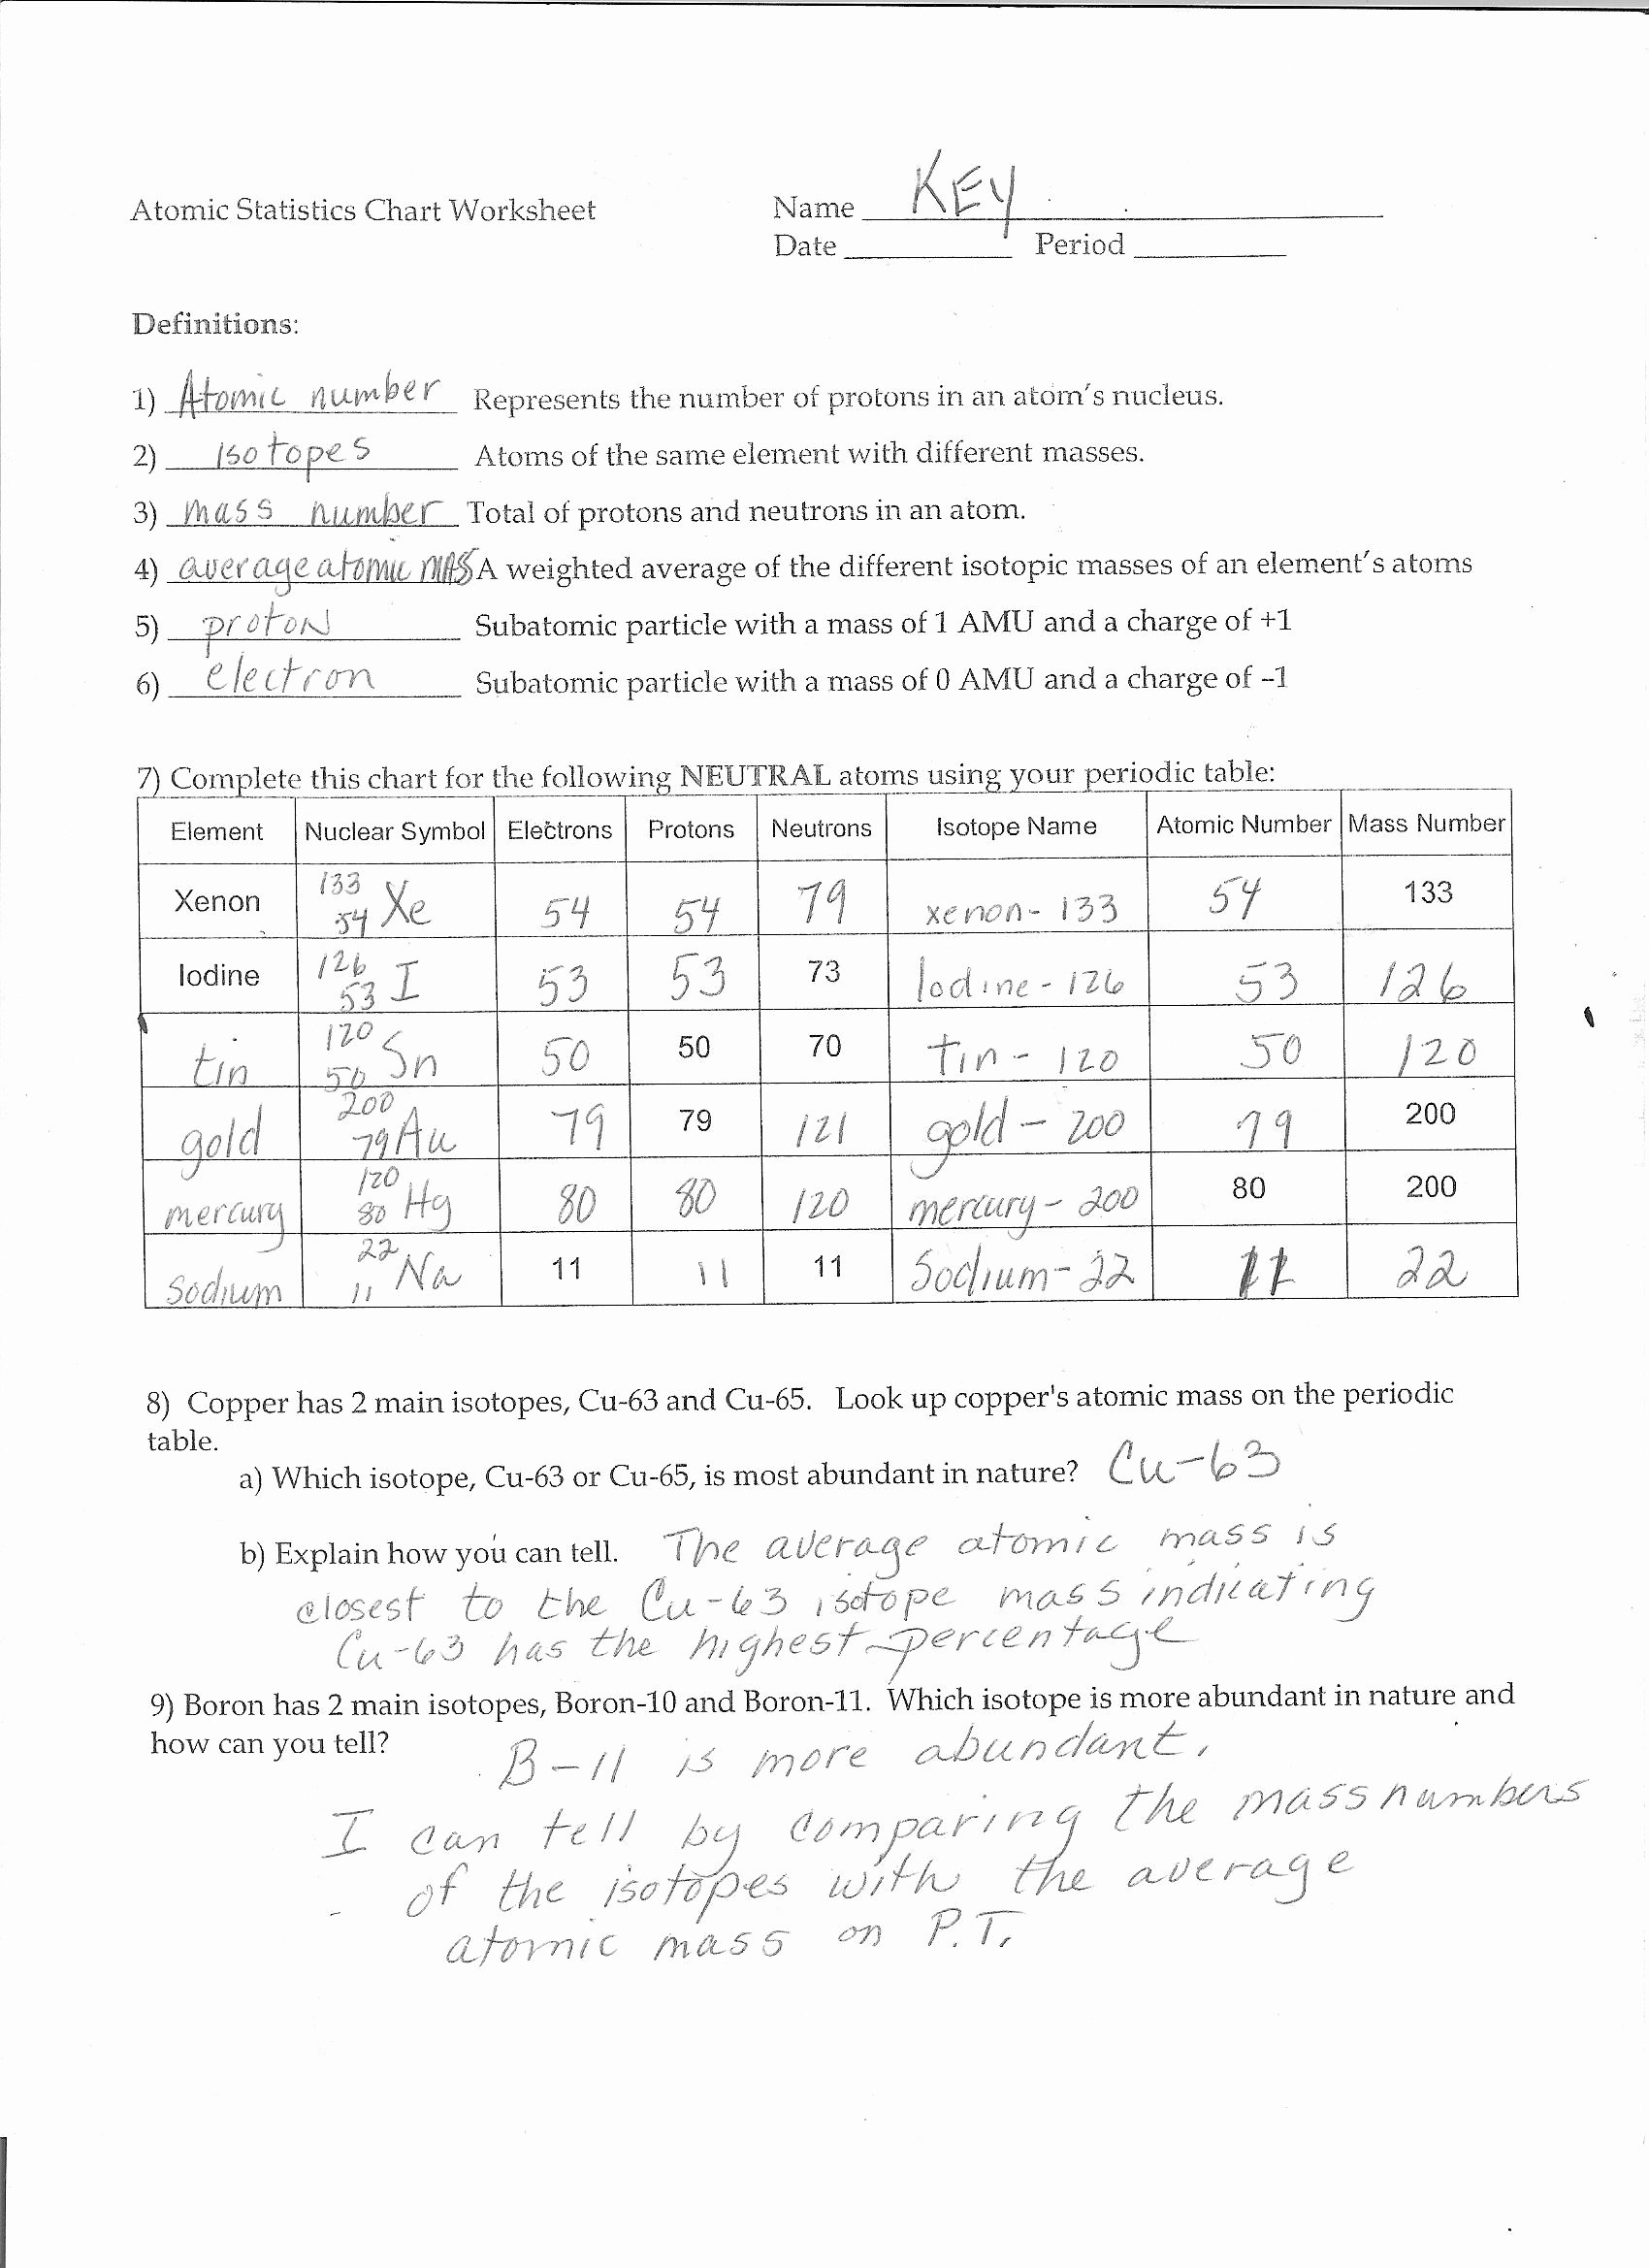 Atomic Structure Practice Worksheet Answers Fresh isotopes Ions and atoms Worksheet 2 Answer Key